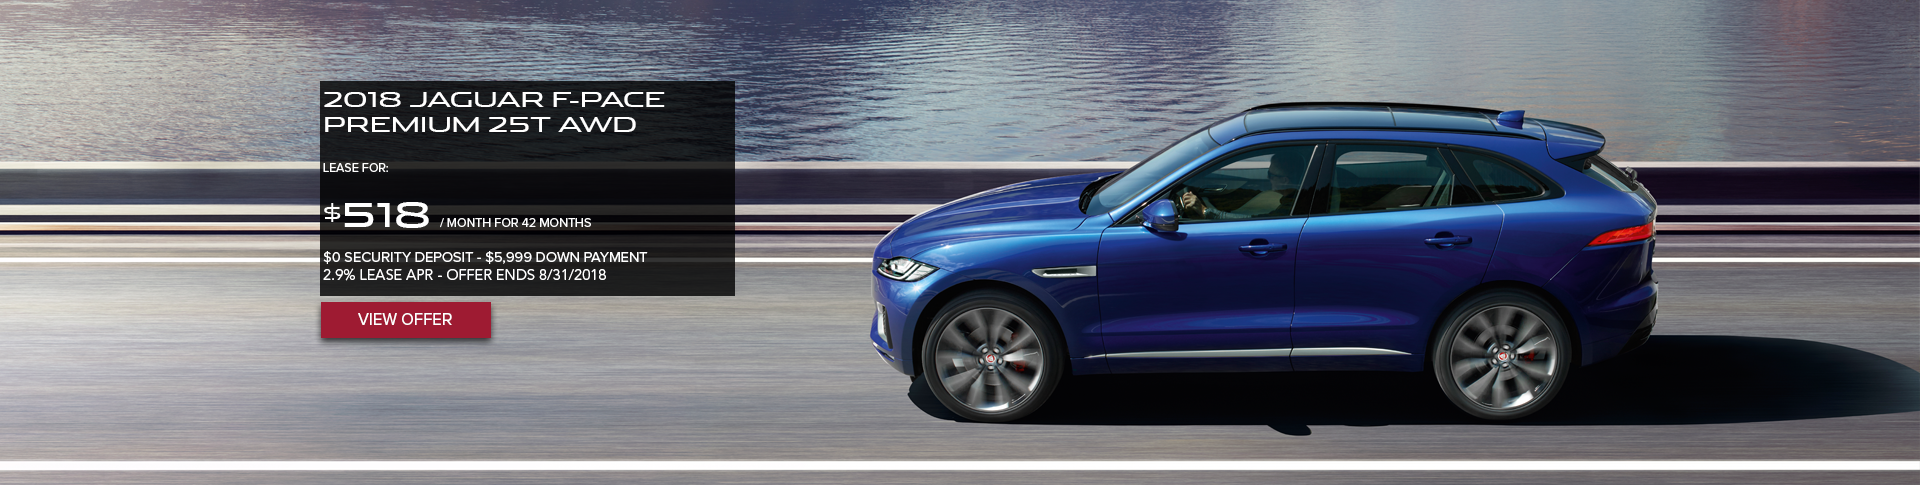 August 2018 F-PACE Offer